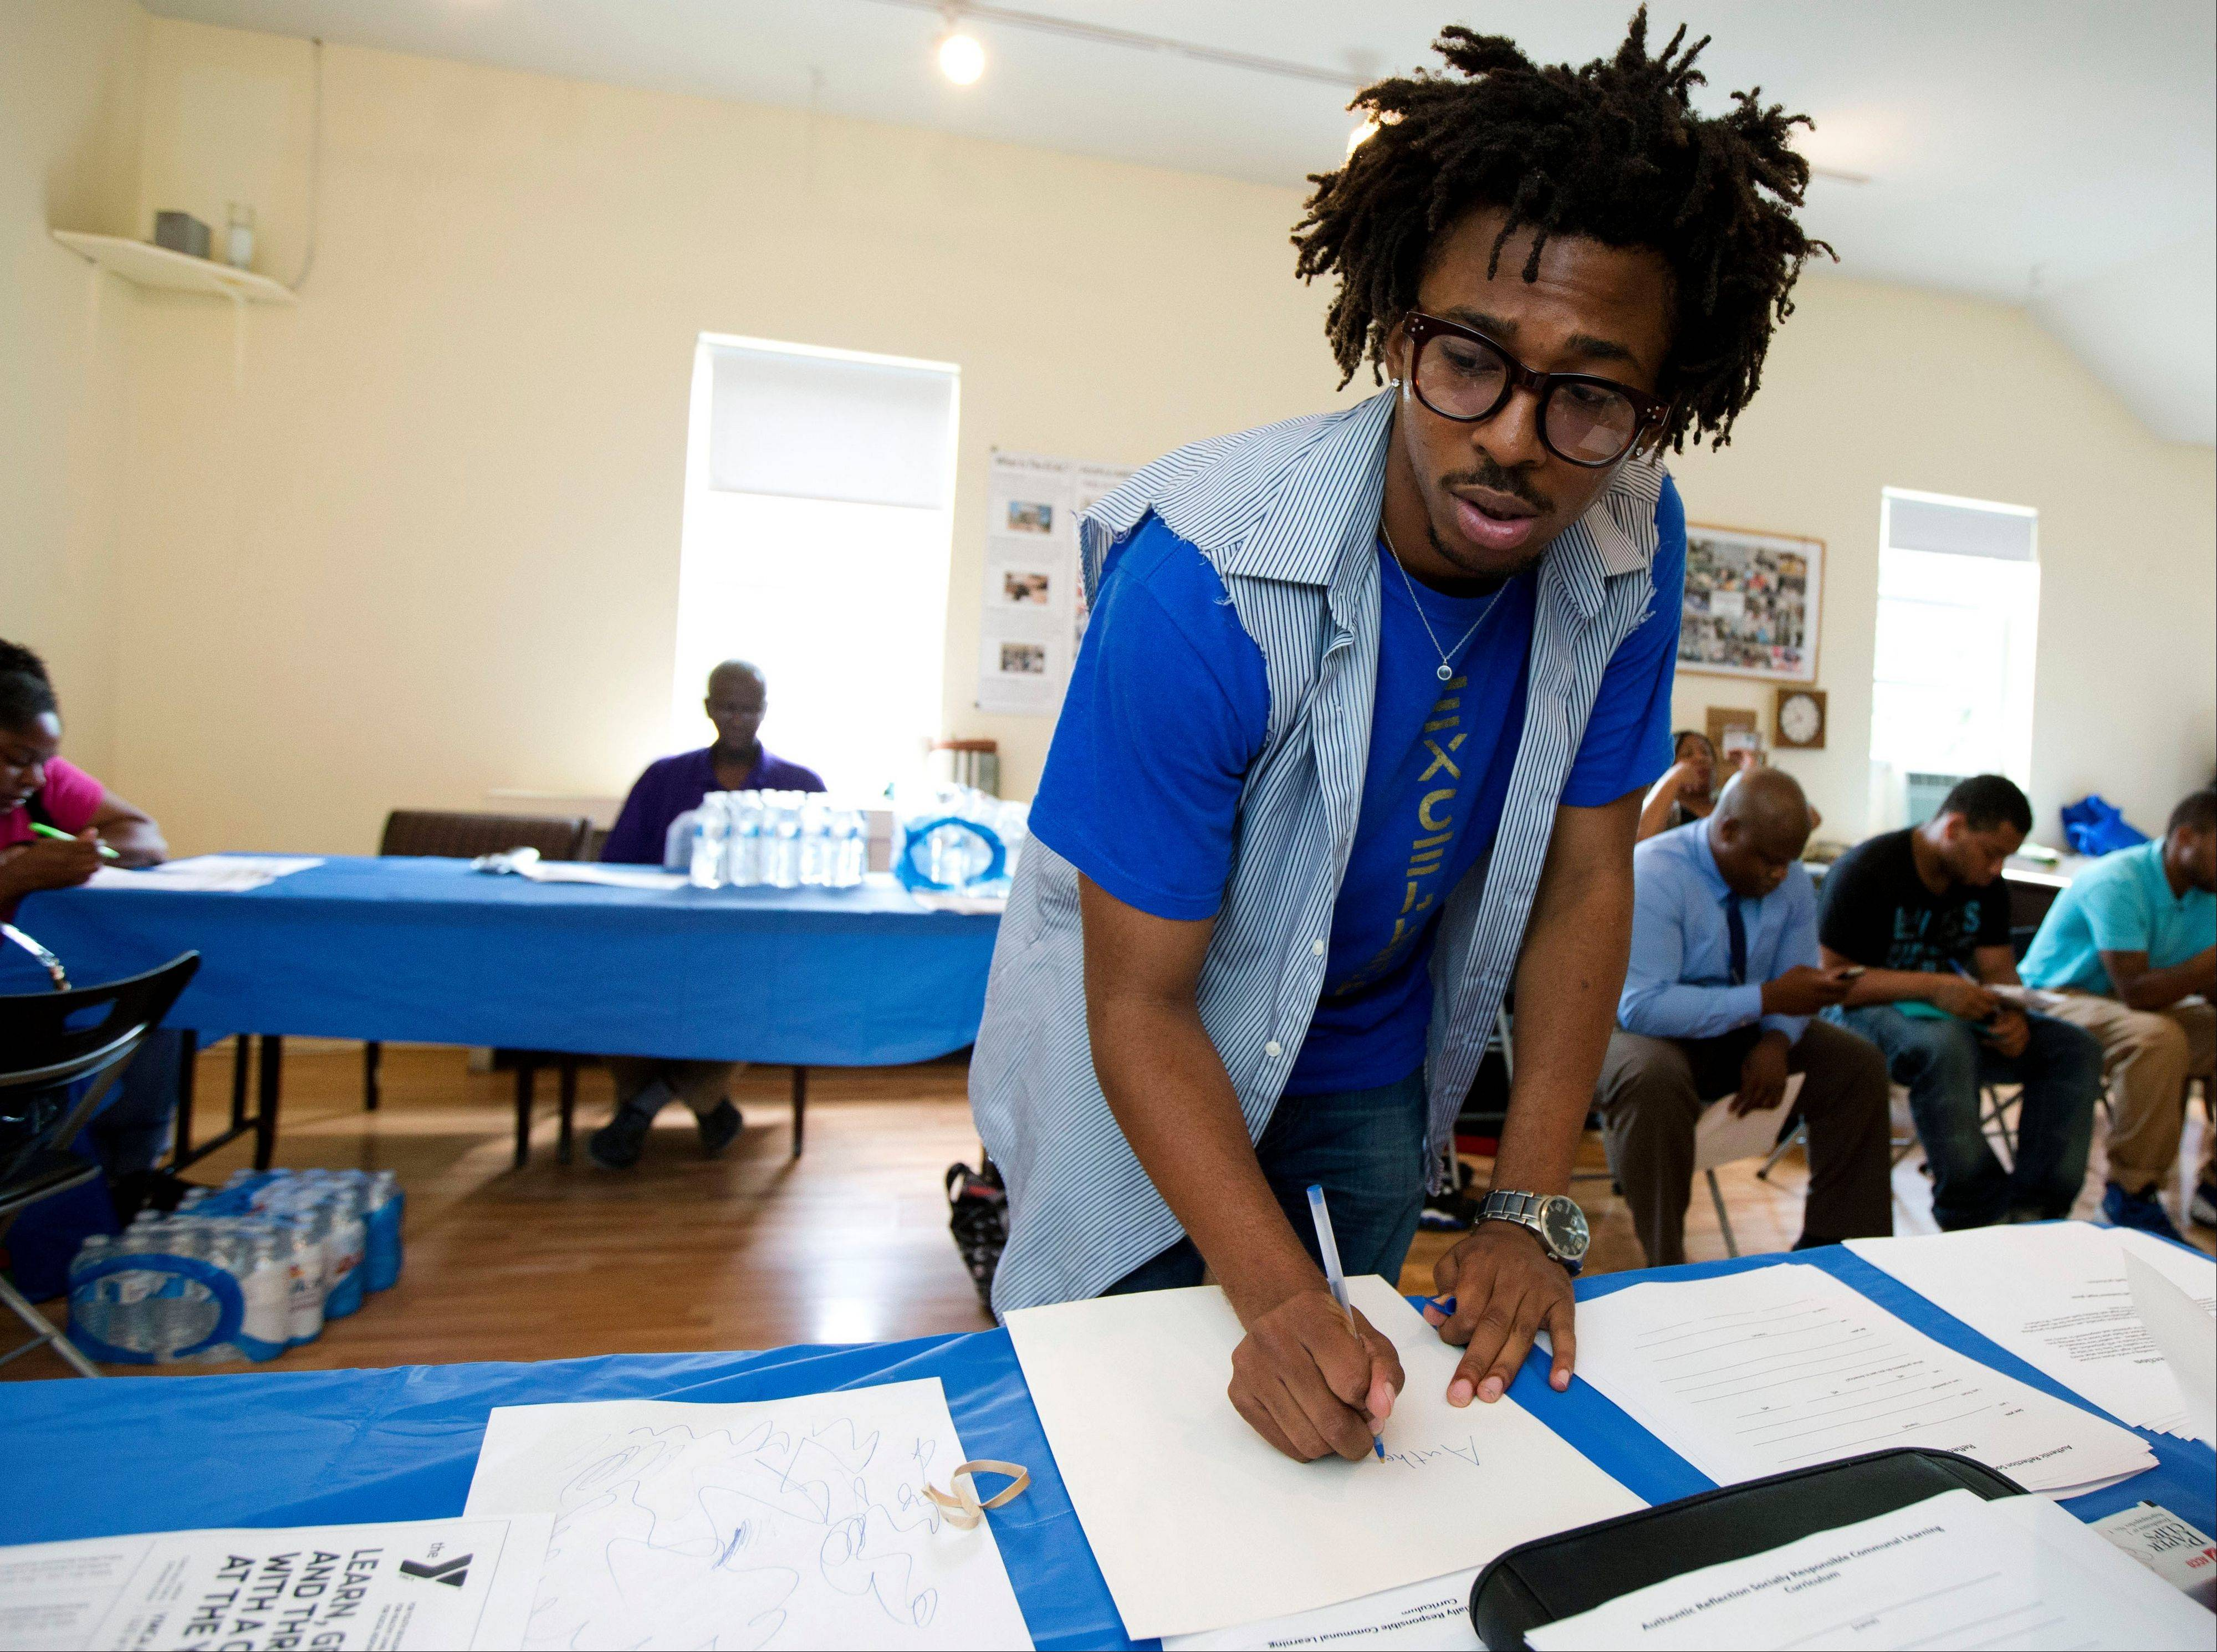 Americorps volunteer John Harris III, who is helping to coordinate a jobs fair program, fills up some documents for job seekers in Washington. The number of people seeking unemployment benefits has sunk to its lowest point in six years because few companies are laying anyone off anymore.